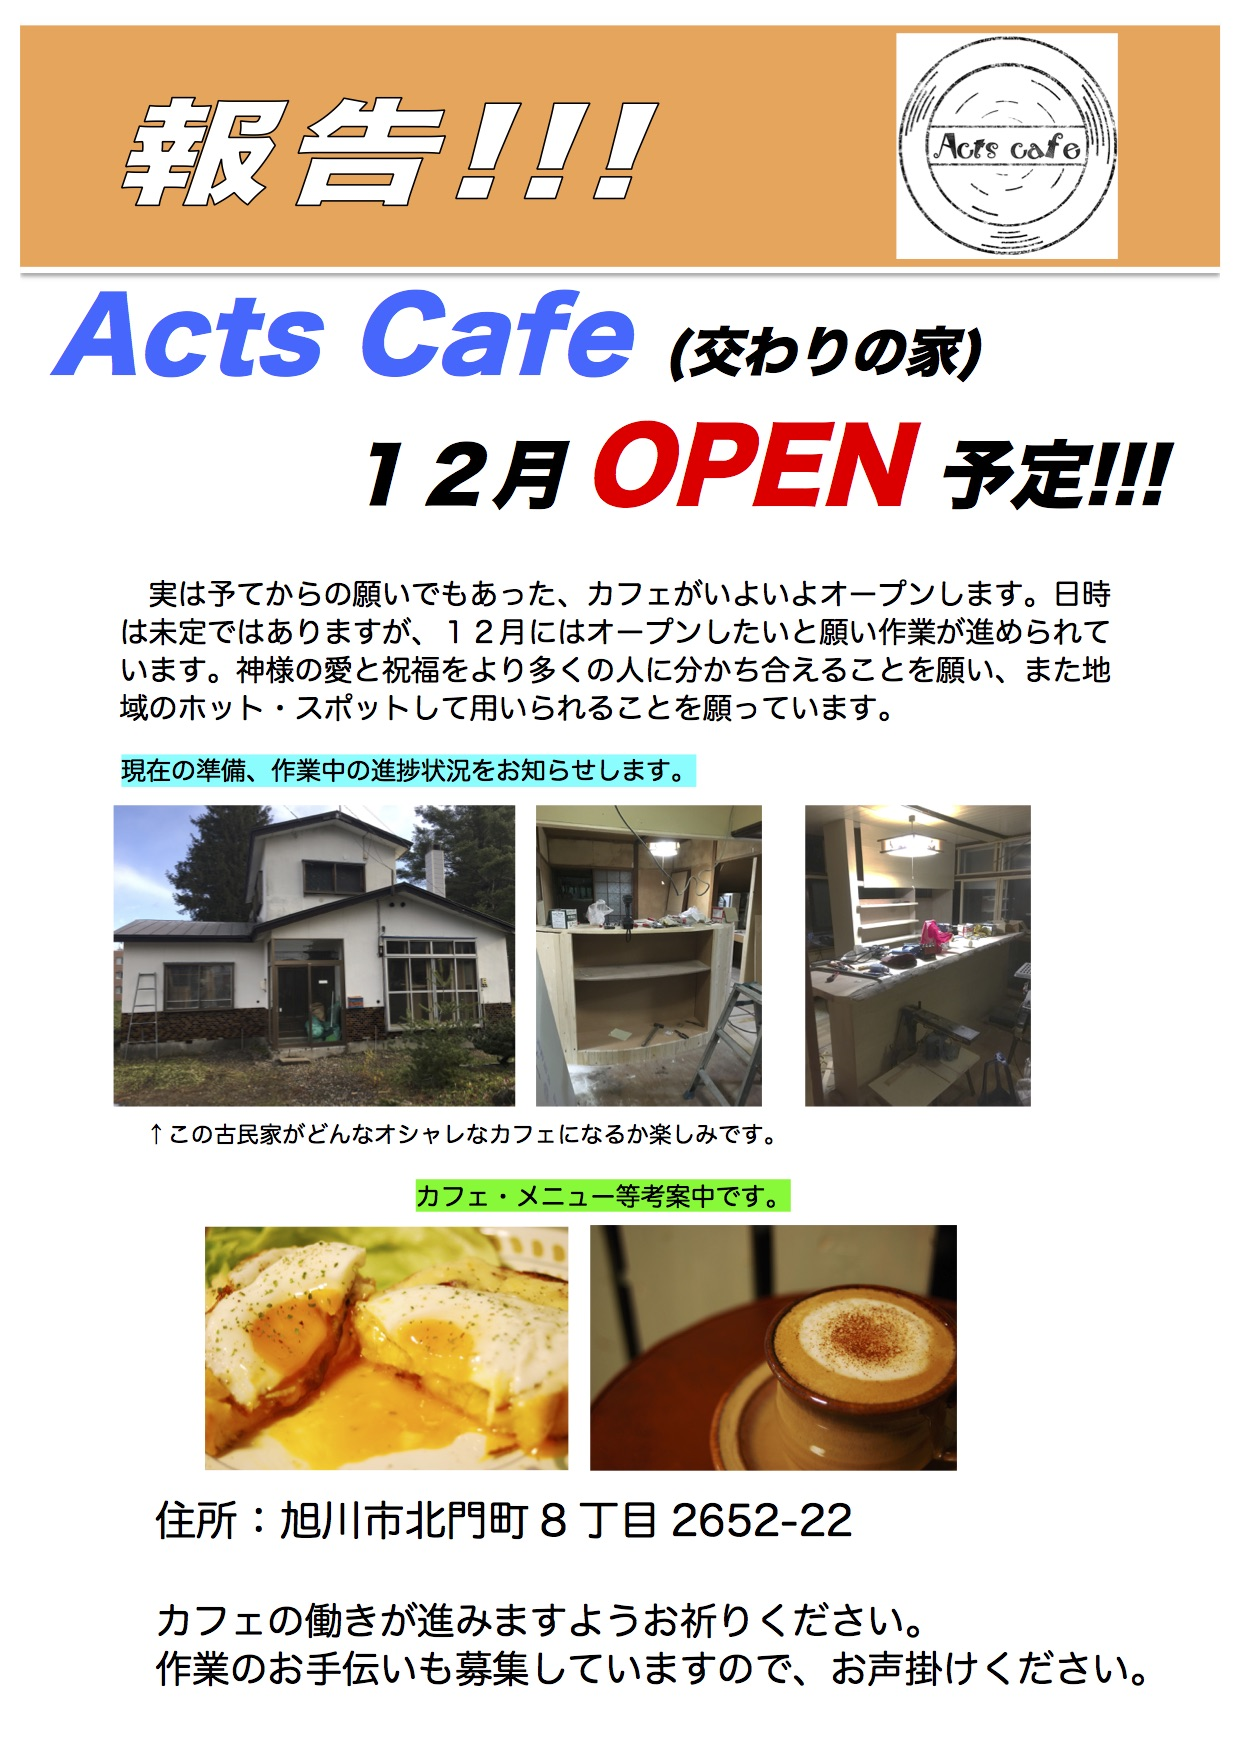 ACT CAFE comming soon